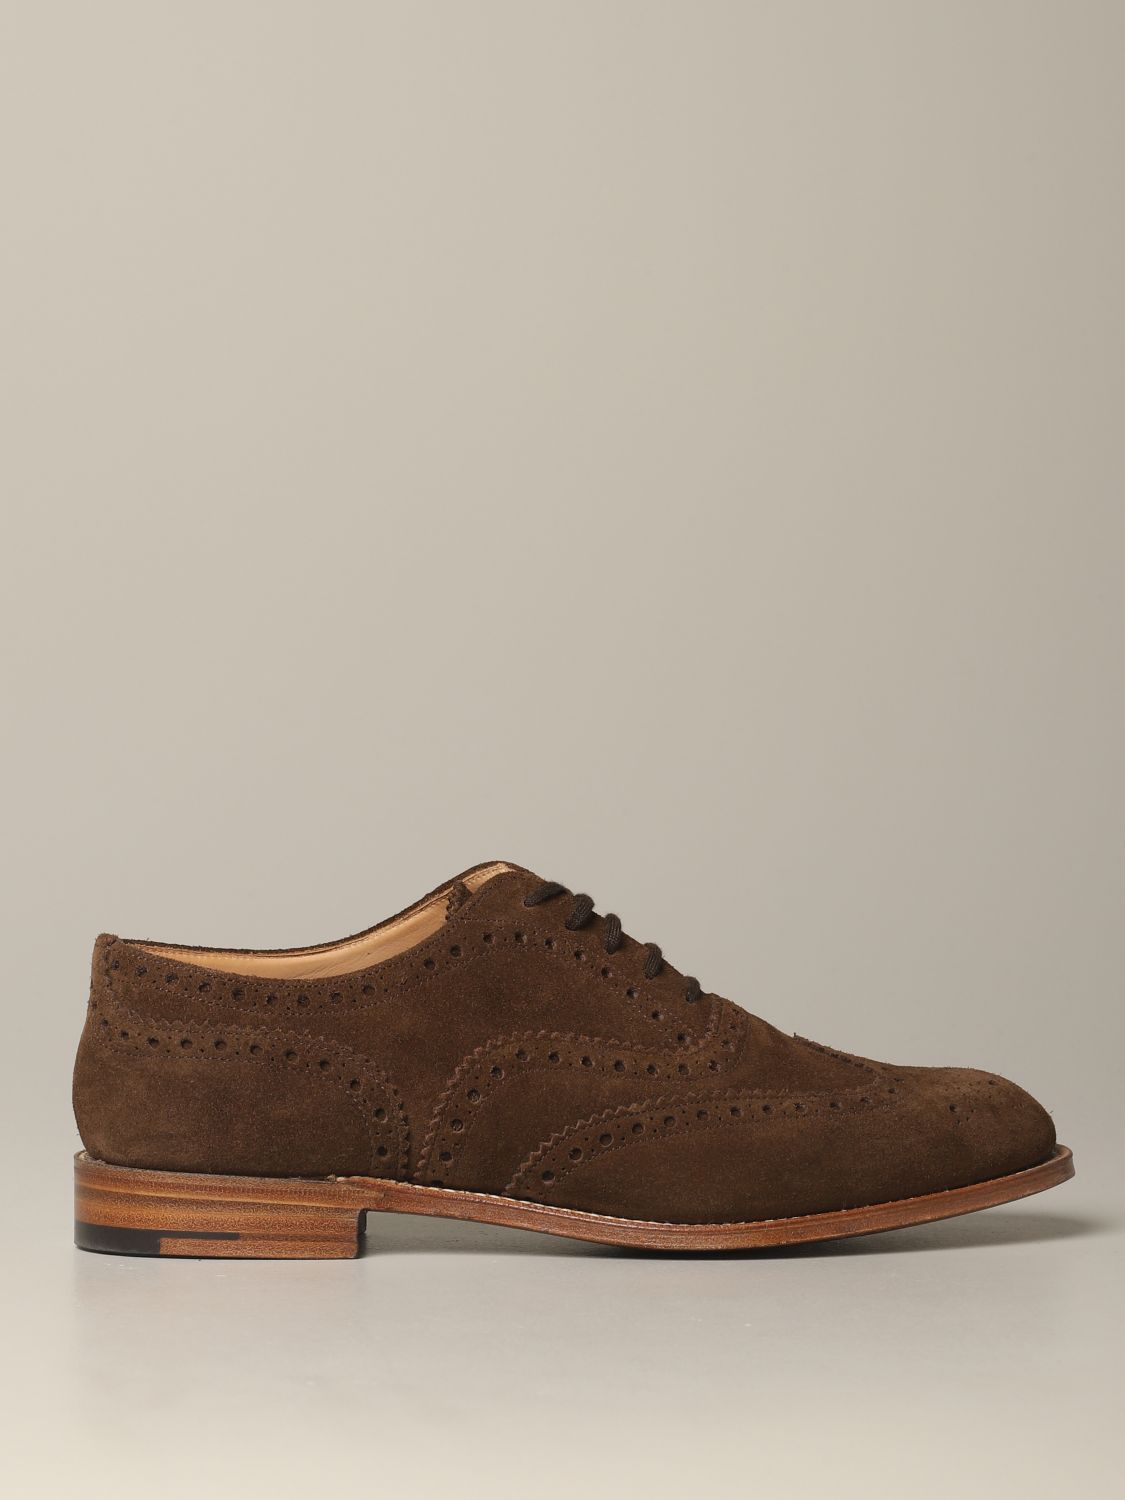 Brogue shoes Church's: Francesina Burwood Church's in suede with brogue motif brown 1